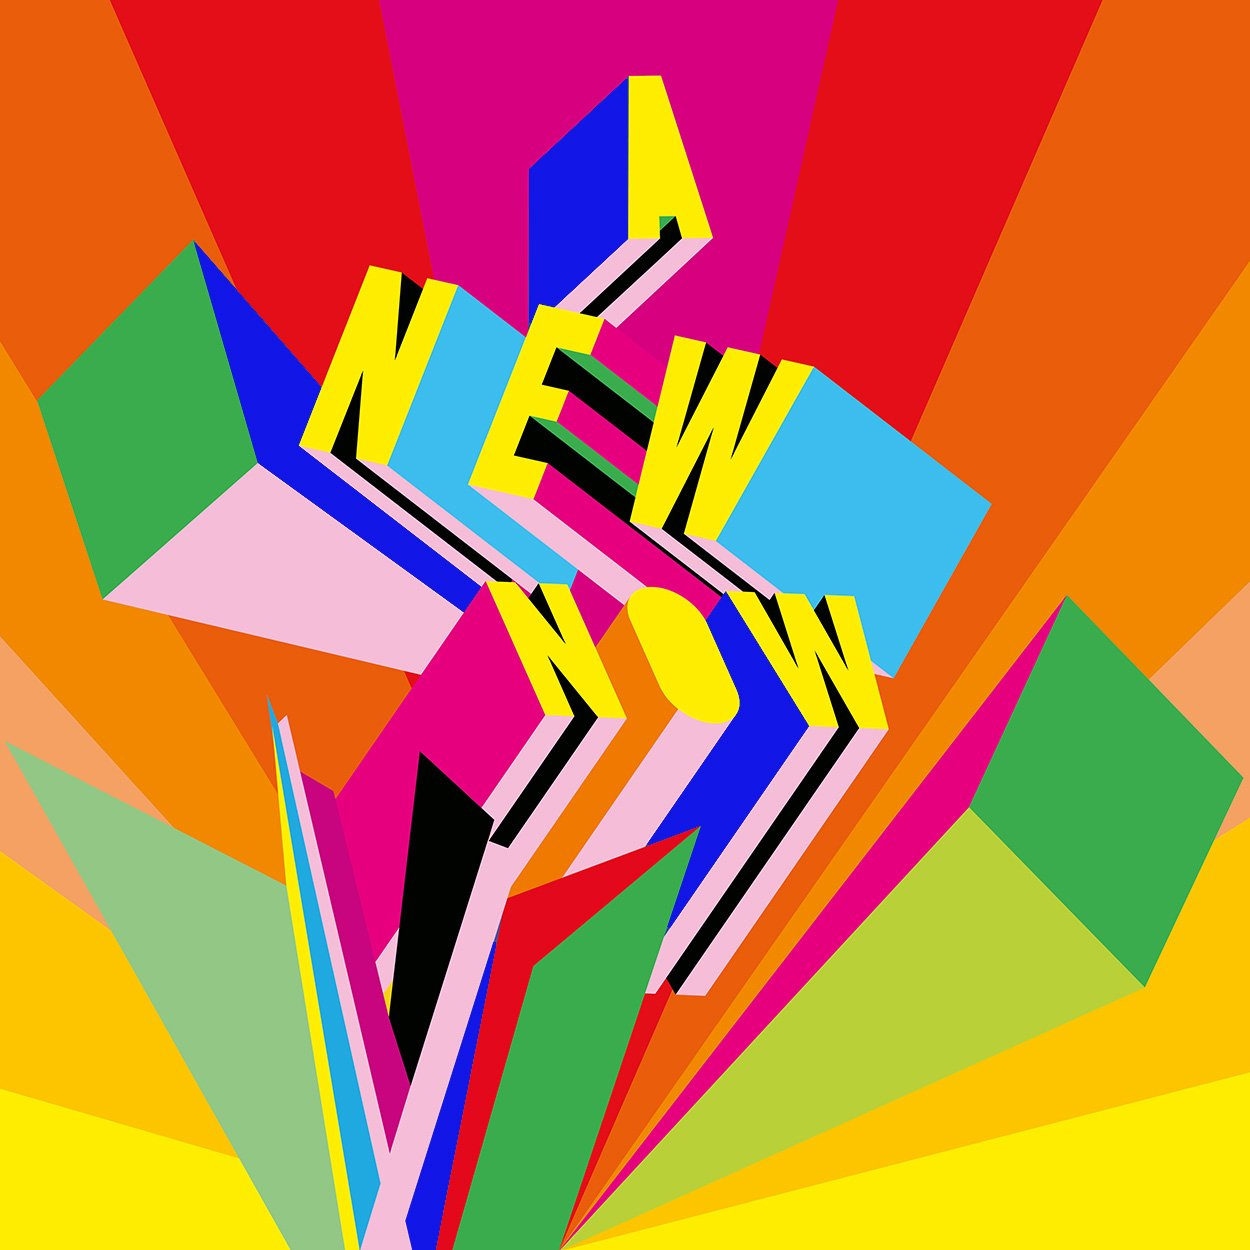 A New Now by Morag Myerscough